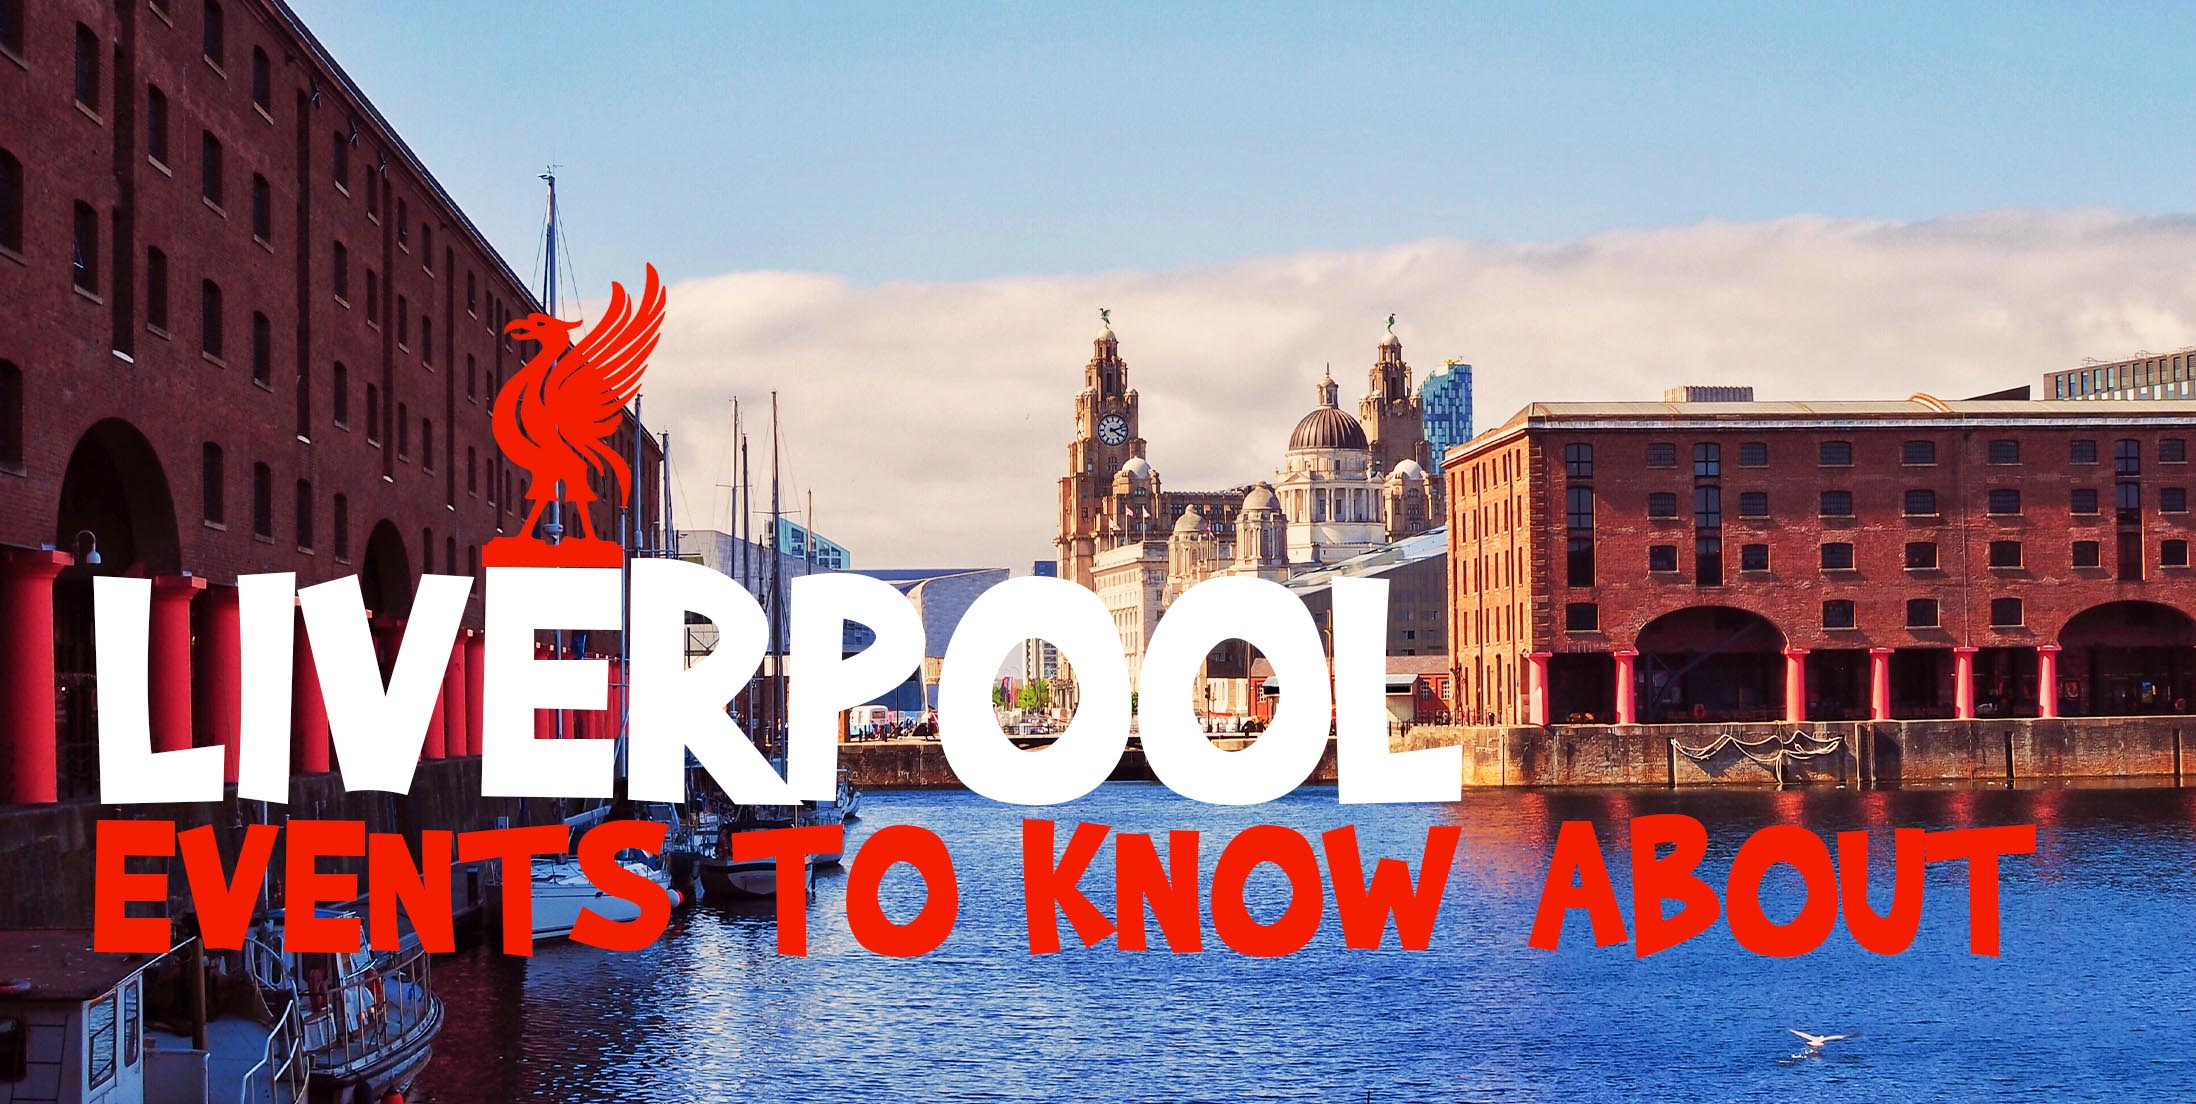 Liverpool Events to Know About